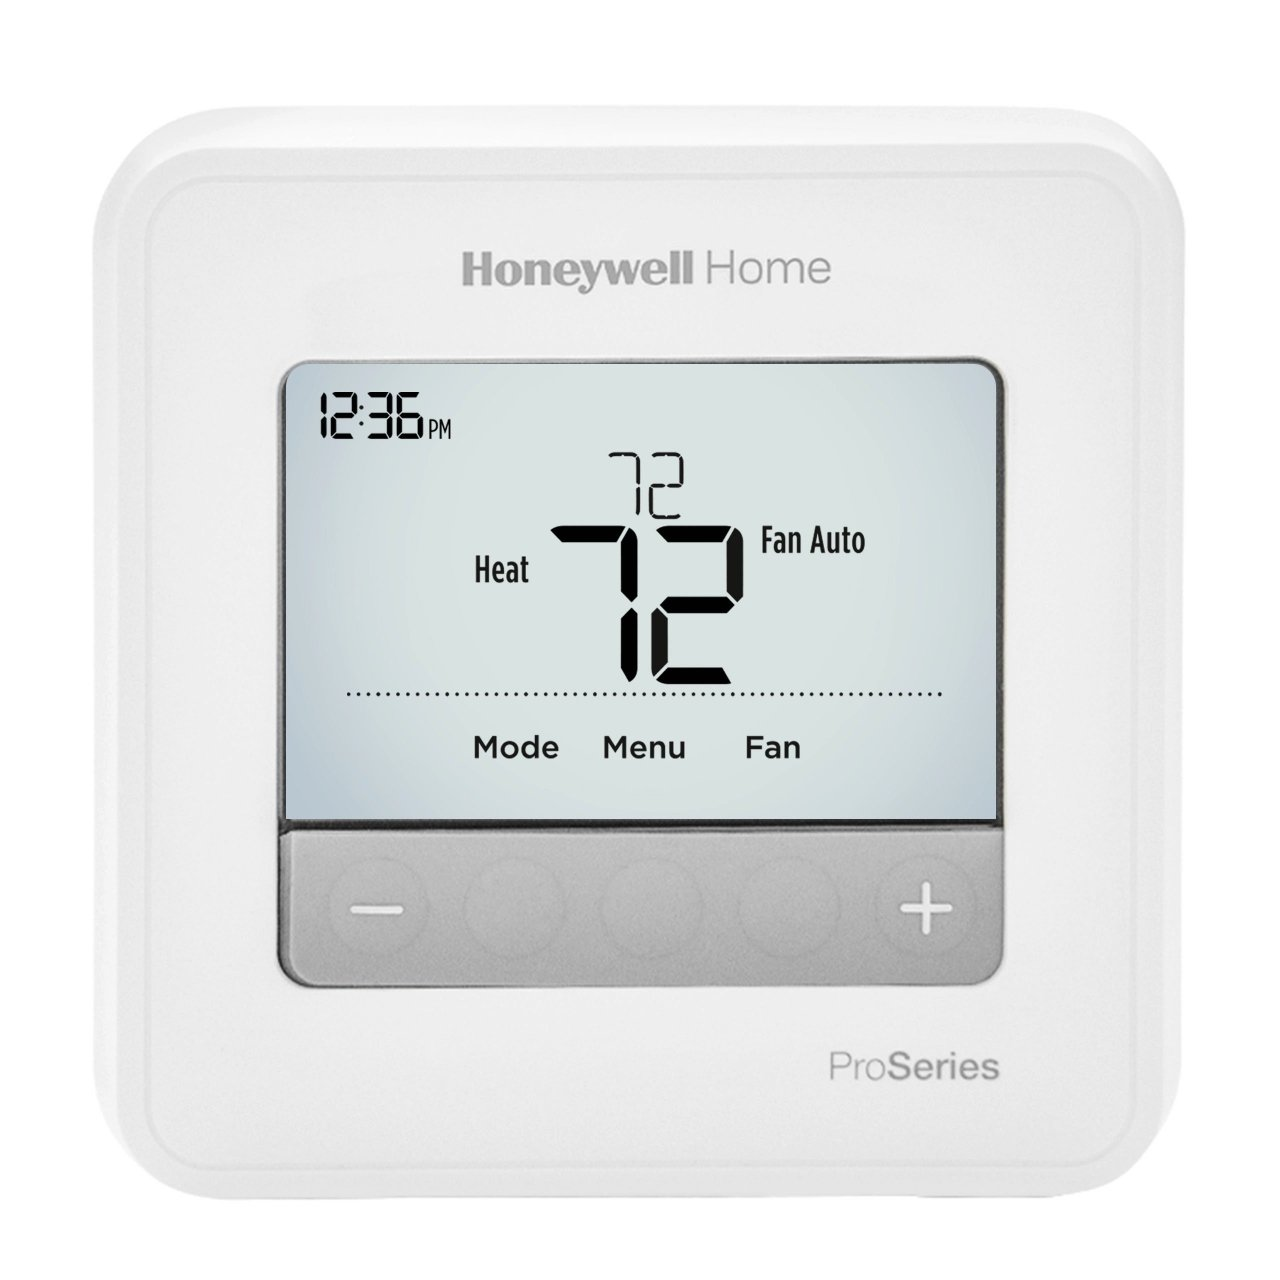 Honeywell Utility Pro Thermostat Wiring Diagram from digitalassets.resideo.com